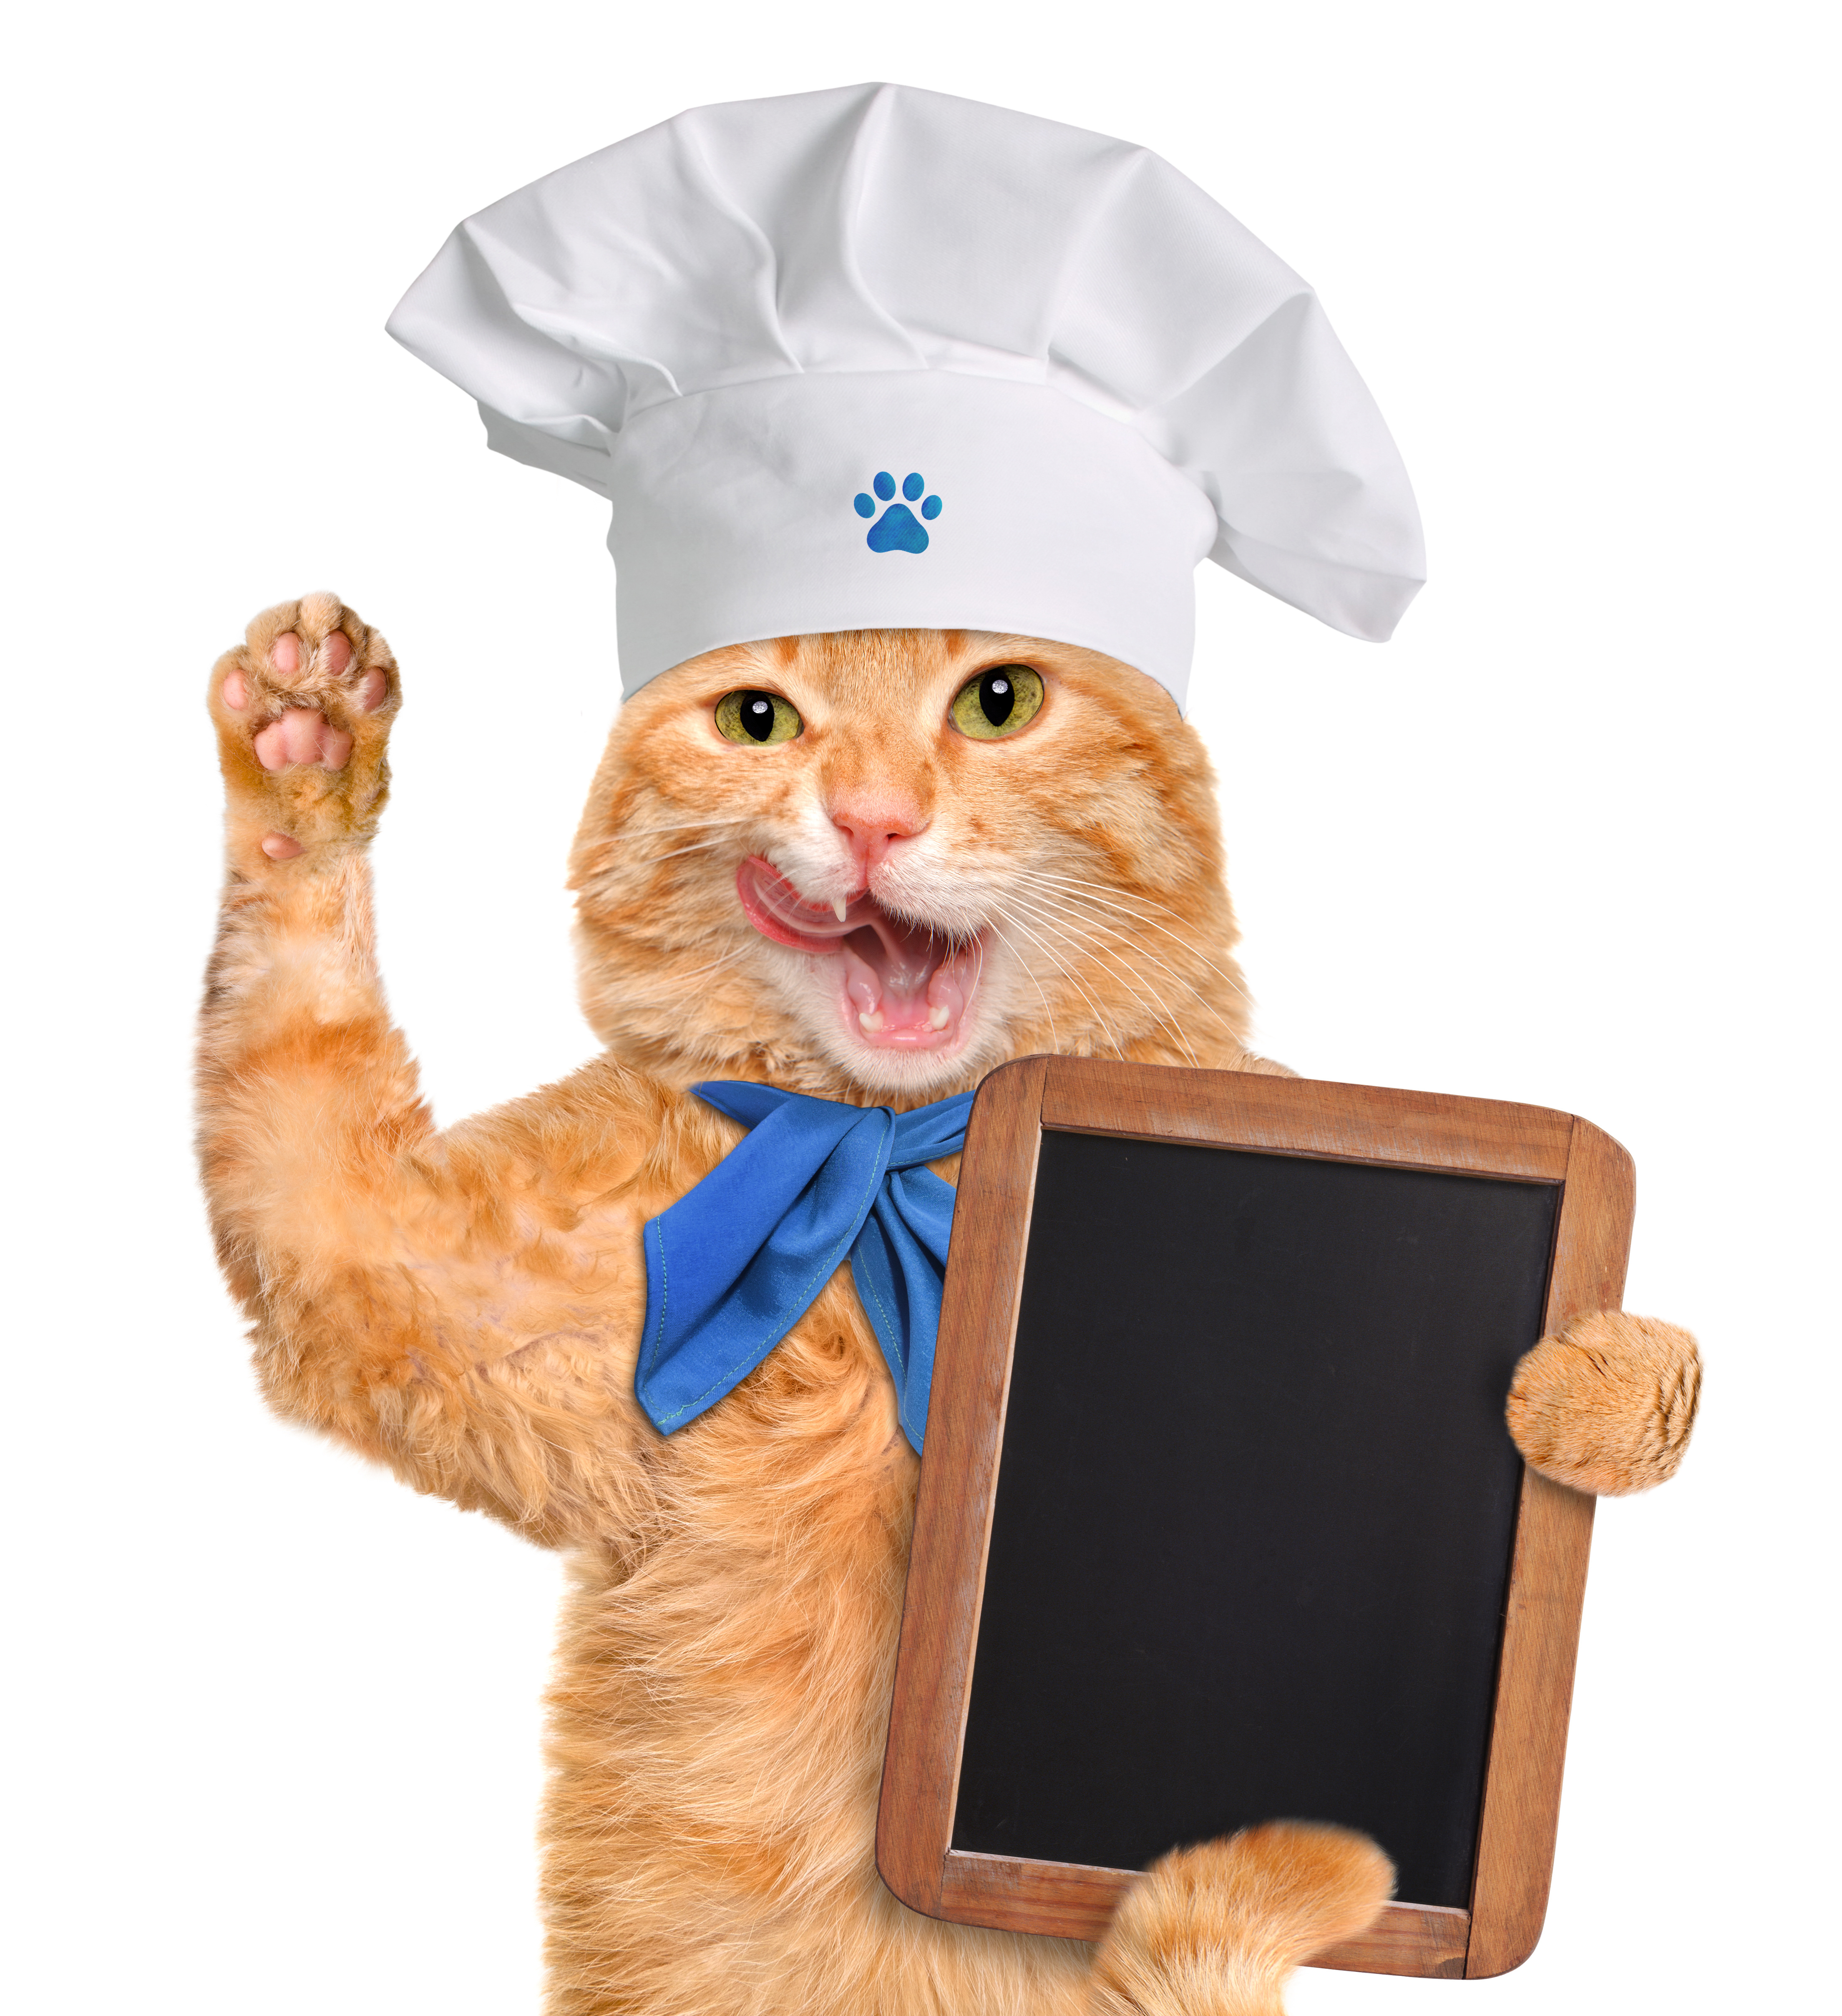 An image of a cat with a chalk board and a hat on, rating best cat food